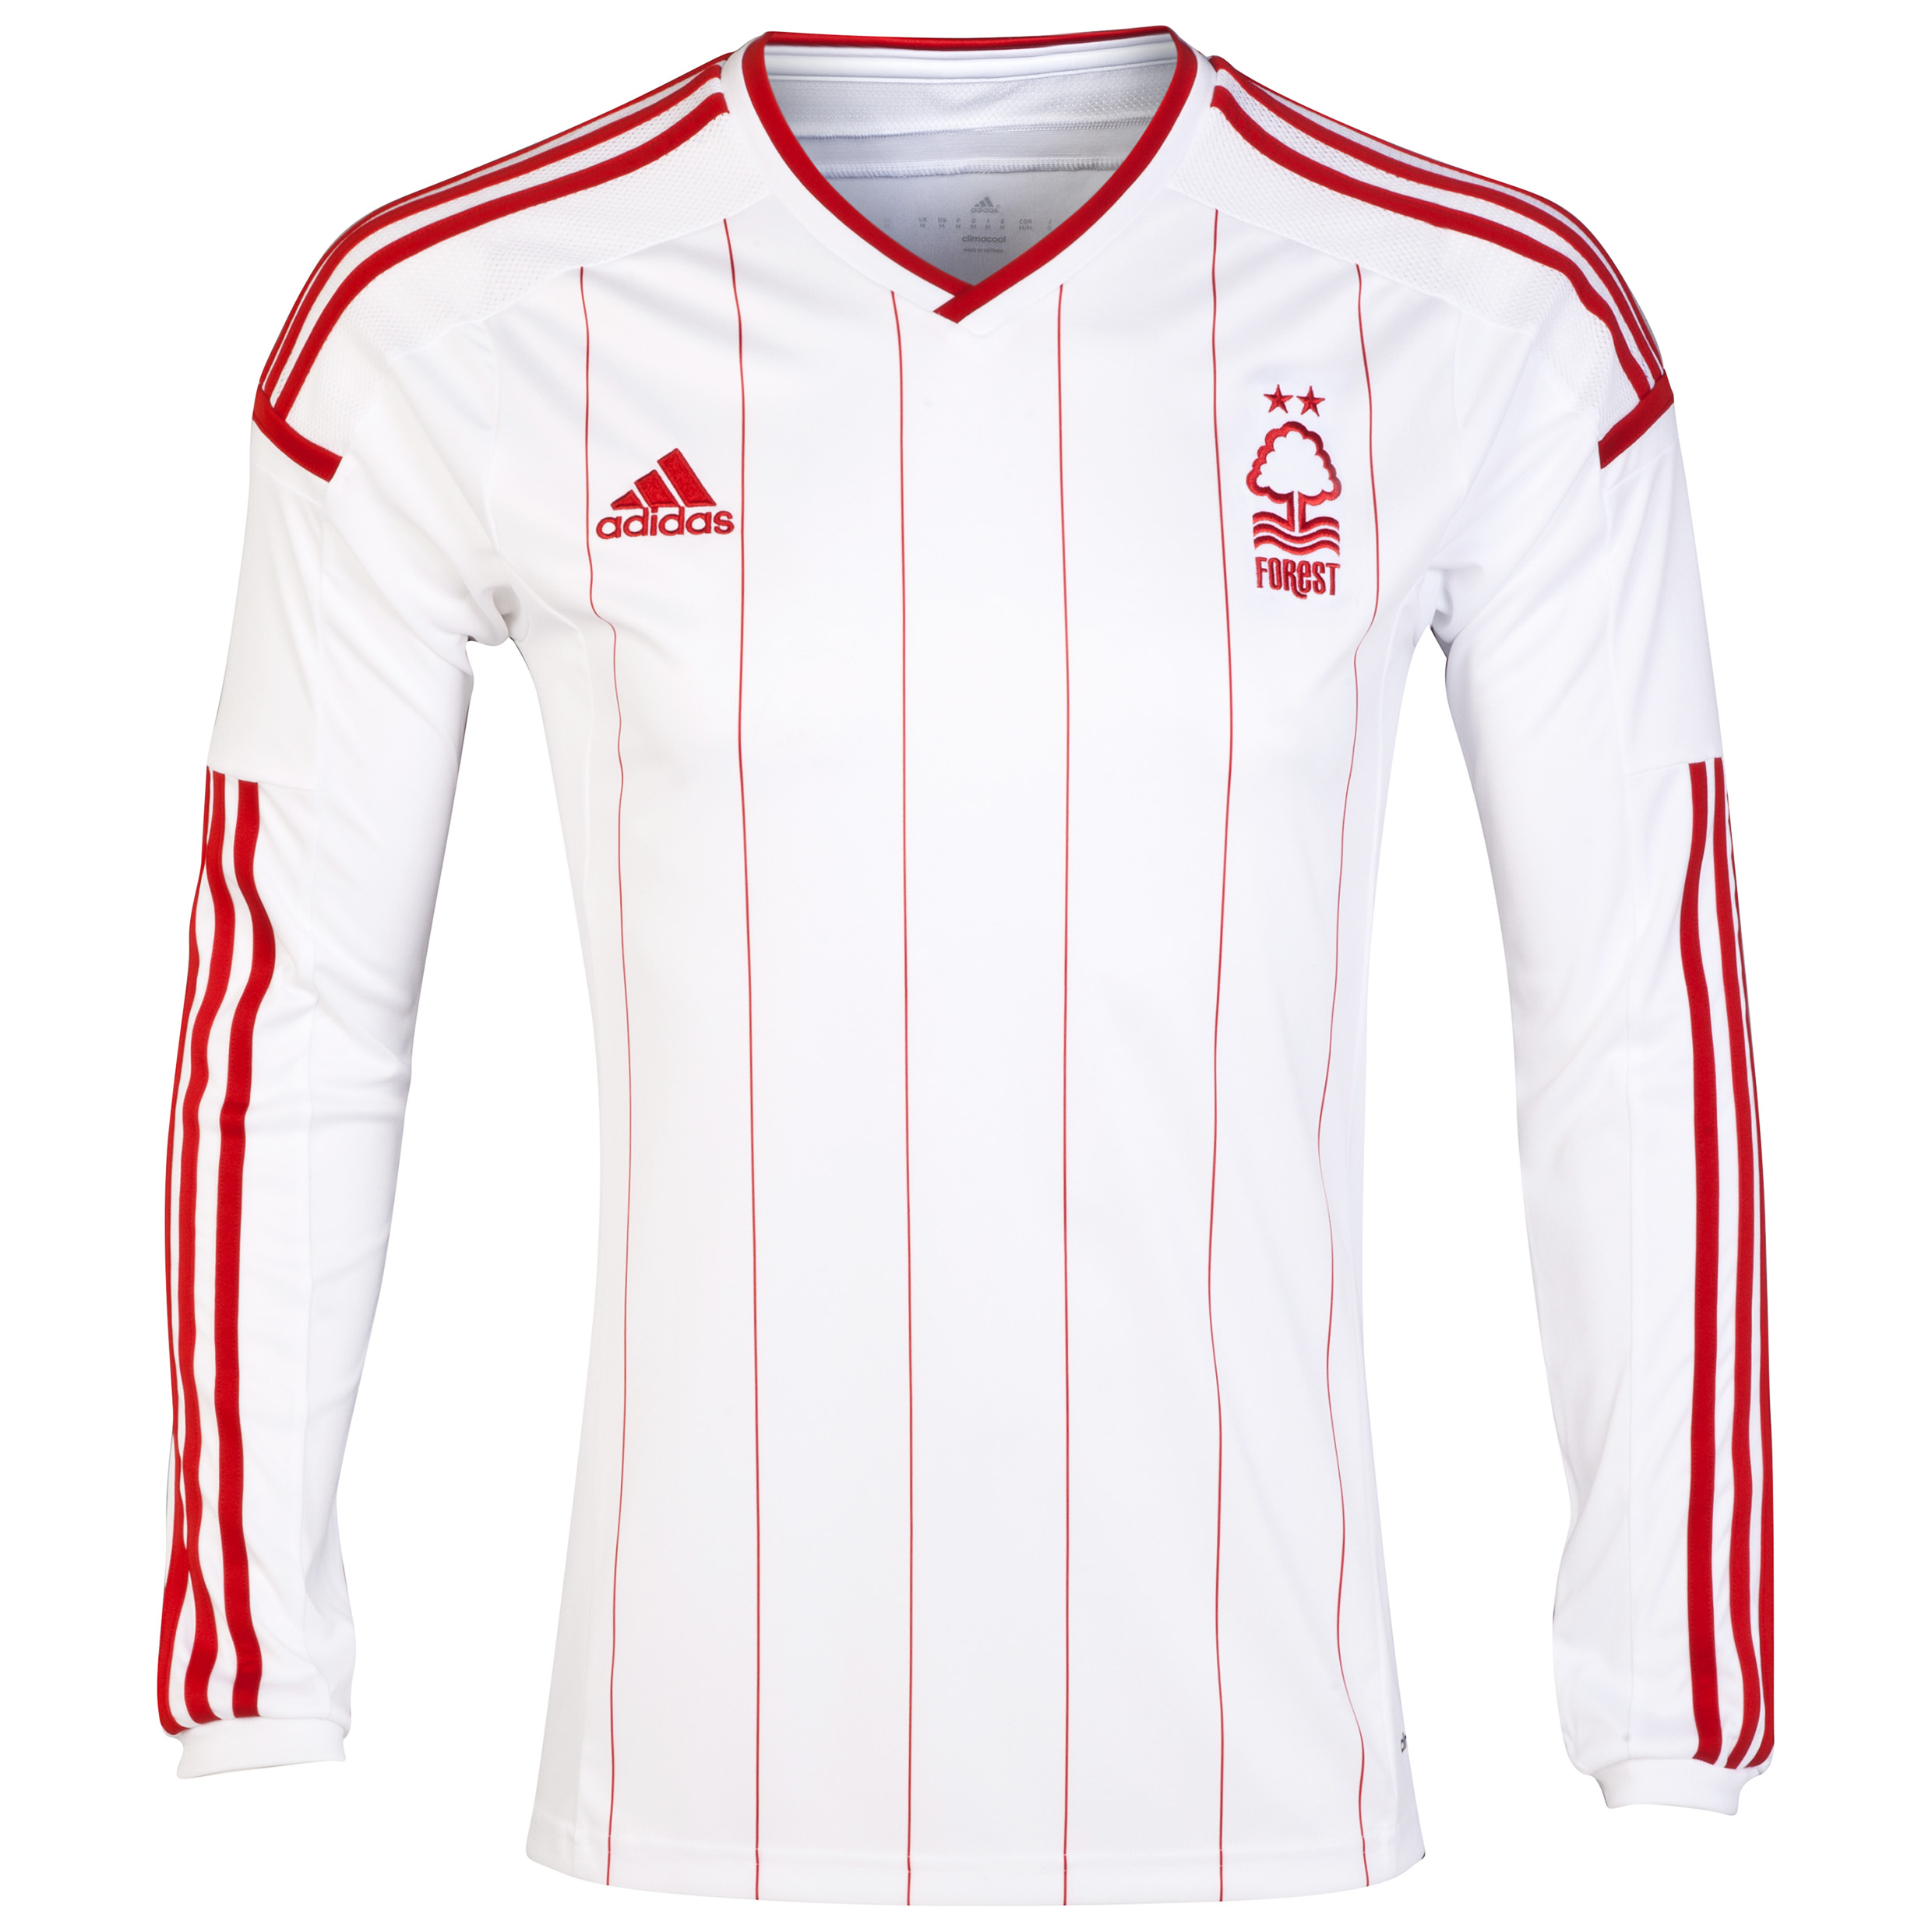 Nottingham Forest Away Shirt 2014/15 - Long Sleeved White